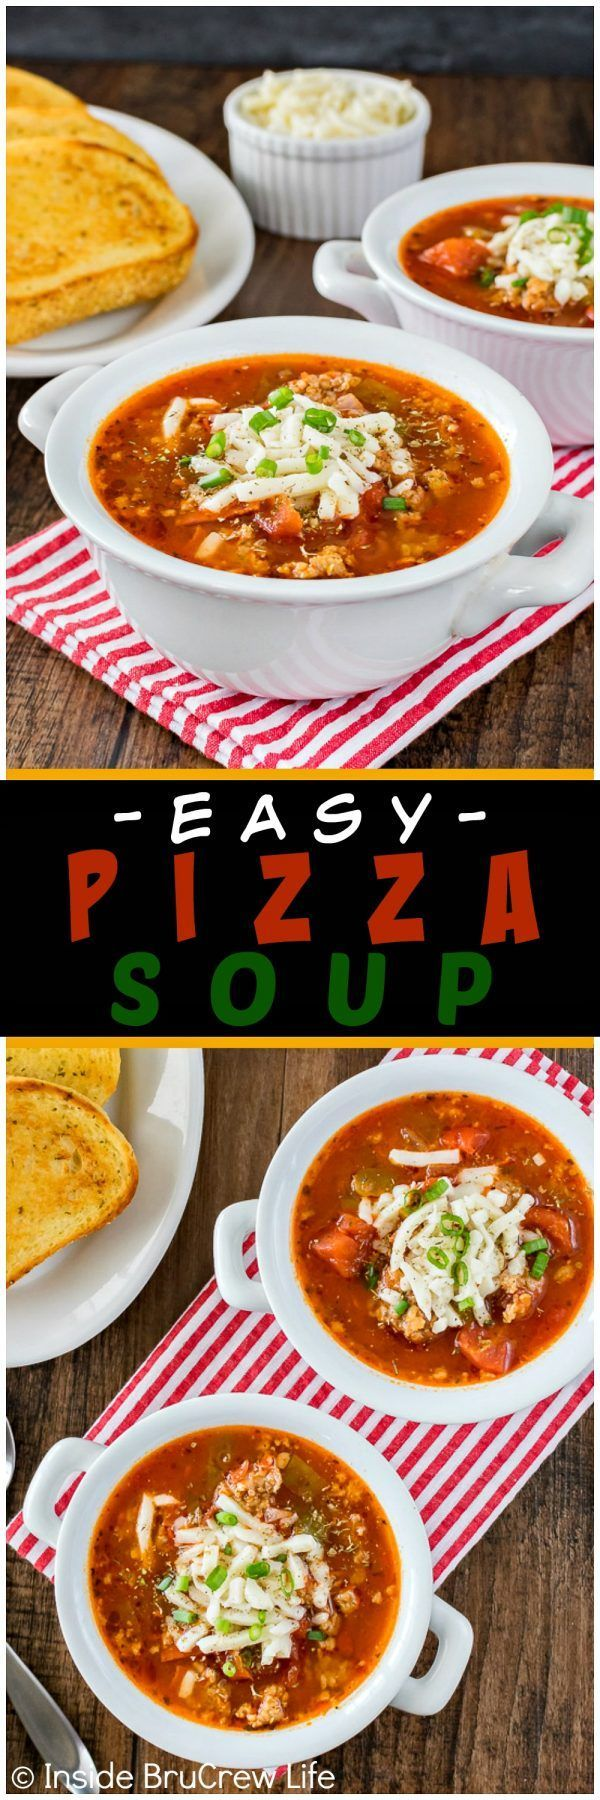 Easy Pizza Soup - this homemade soup is loaded with meat and veggies and can be ready in minutes. Great dinner recipe for busy or cold nights!